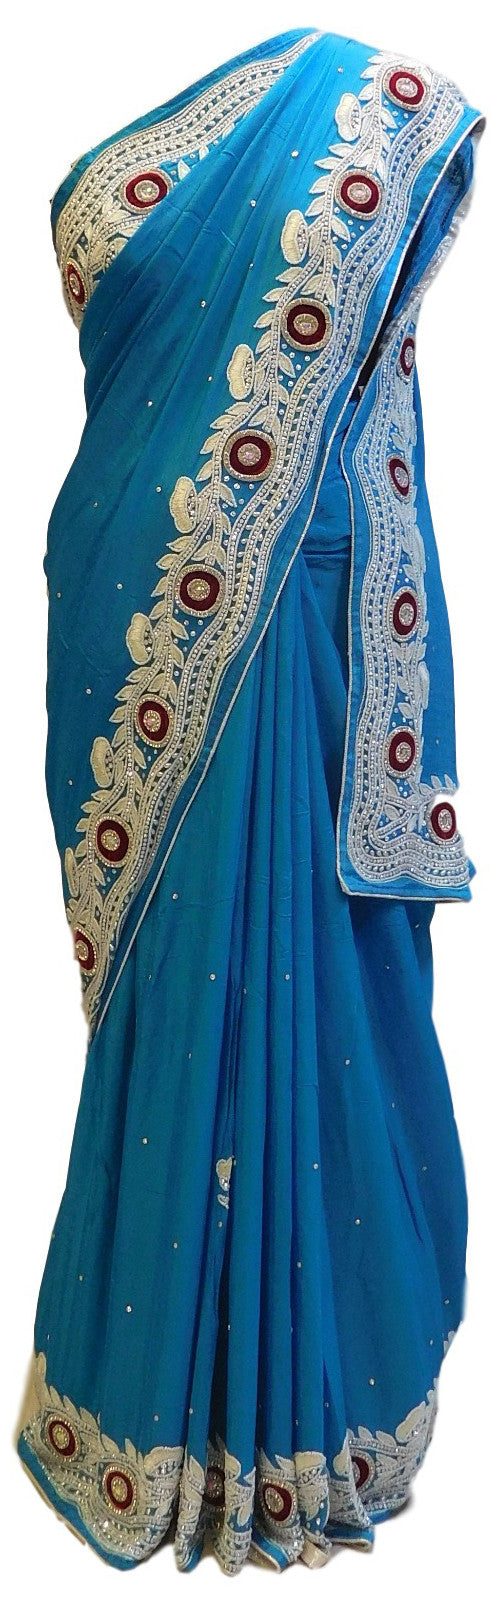 Blue Designer Crepe (Chinon) Hand Embroidery Cutwork Border Saree